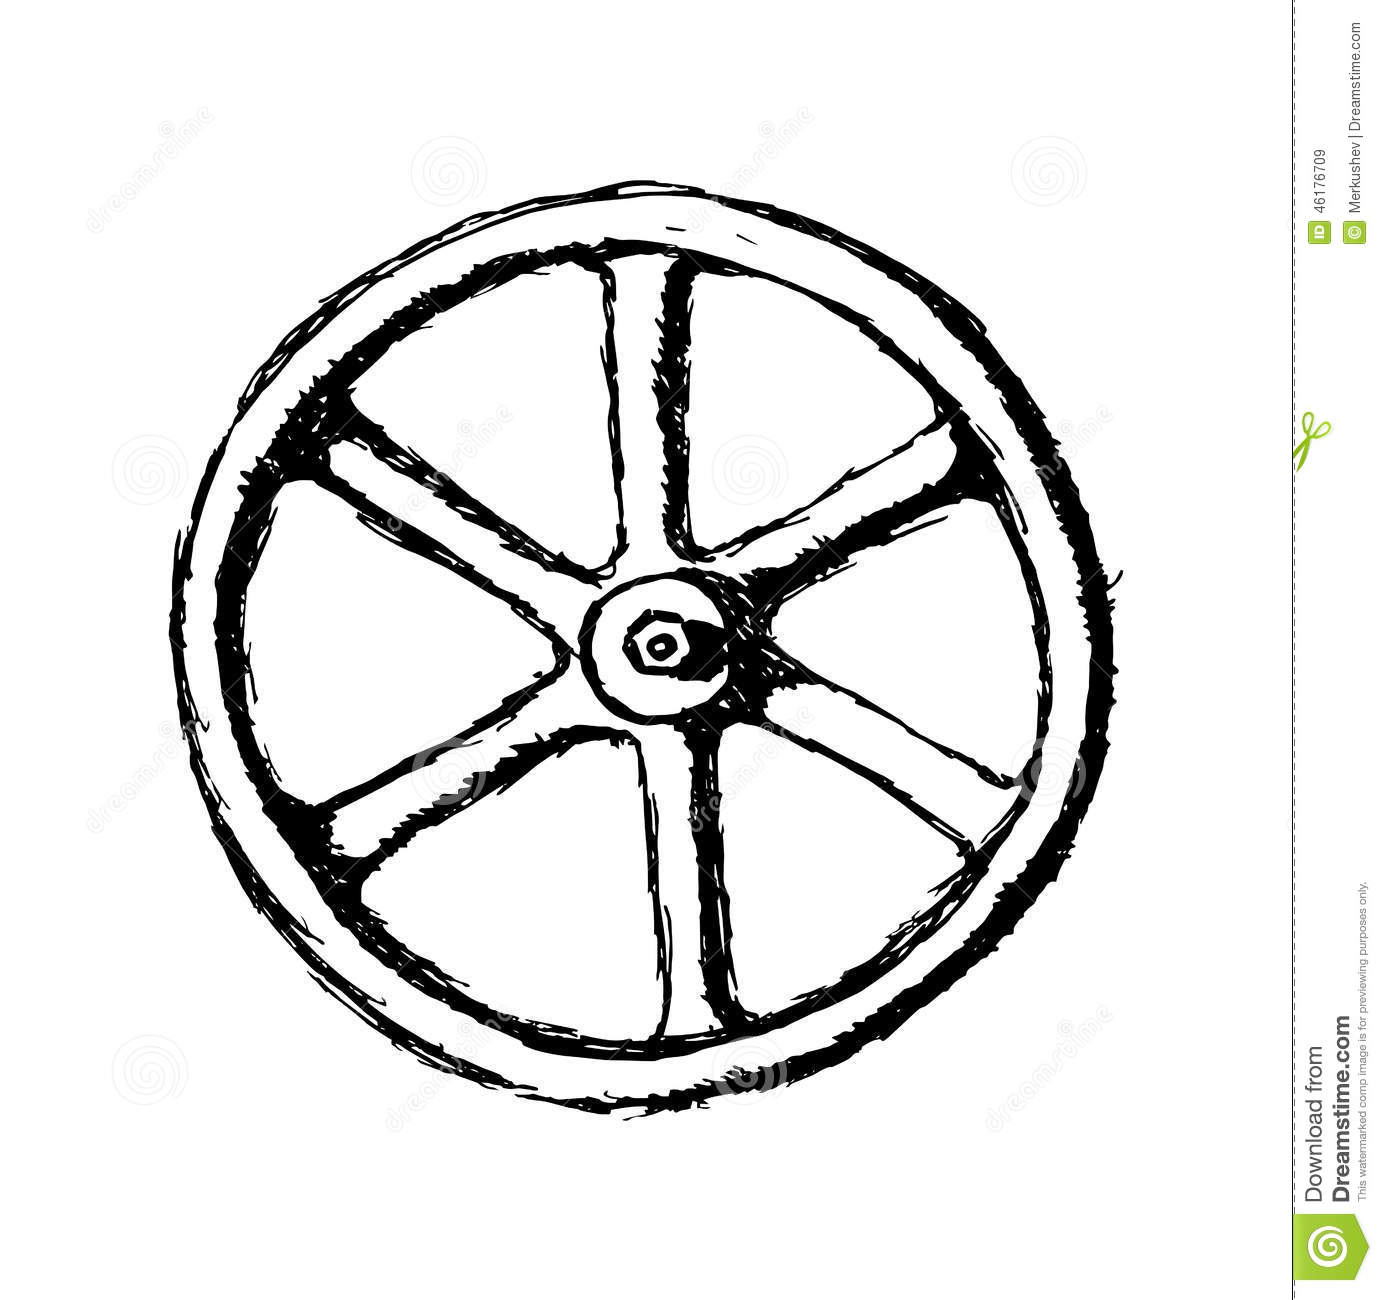 Bicycle Wheel Sketchbdpd9